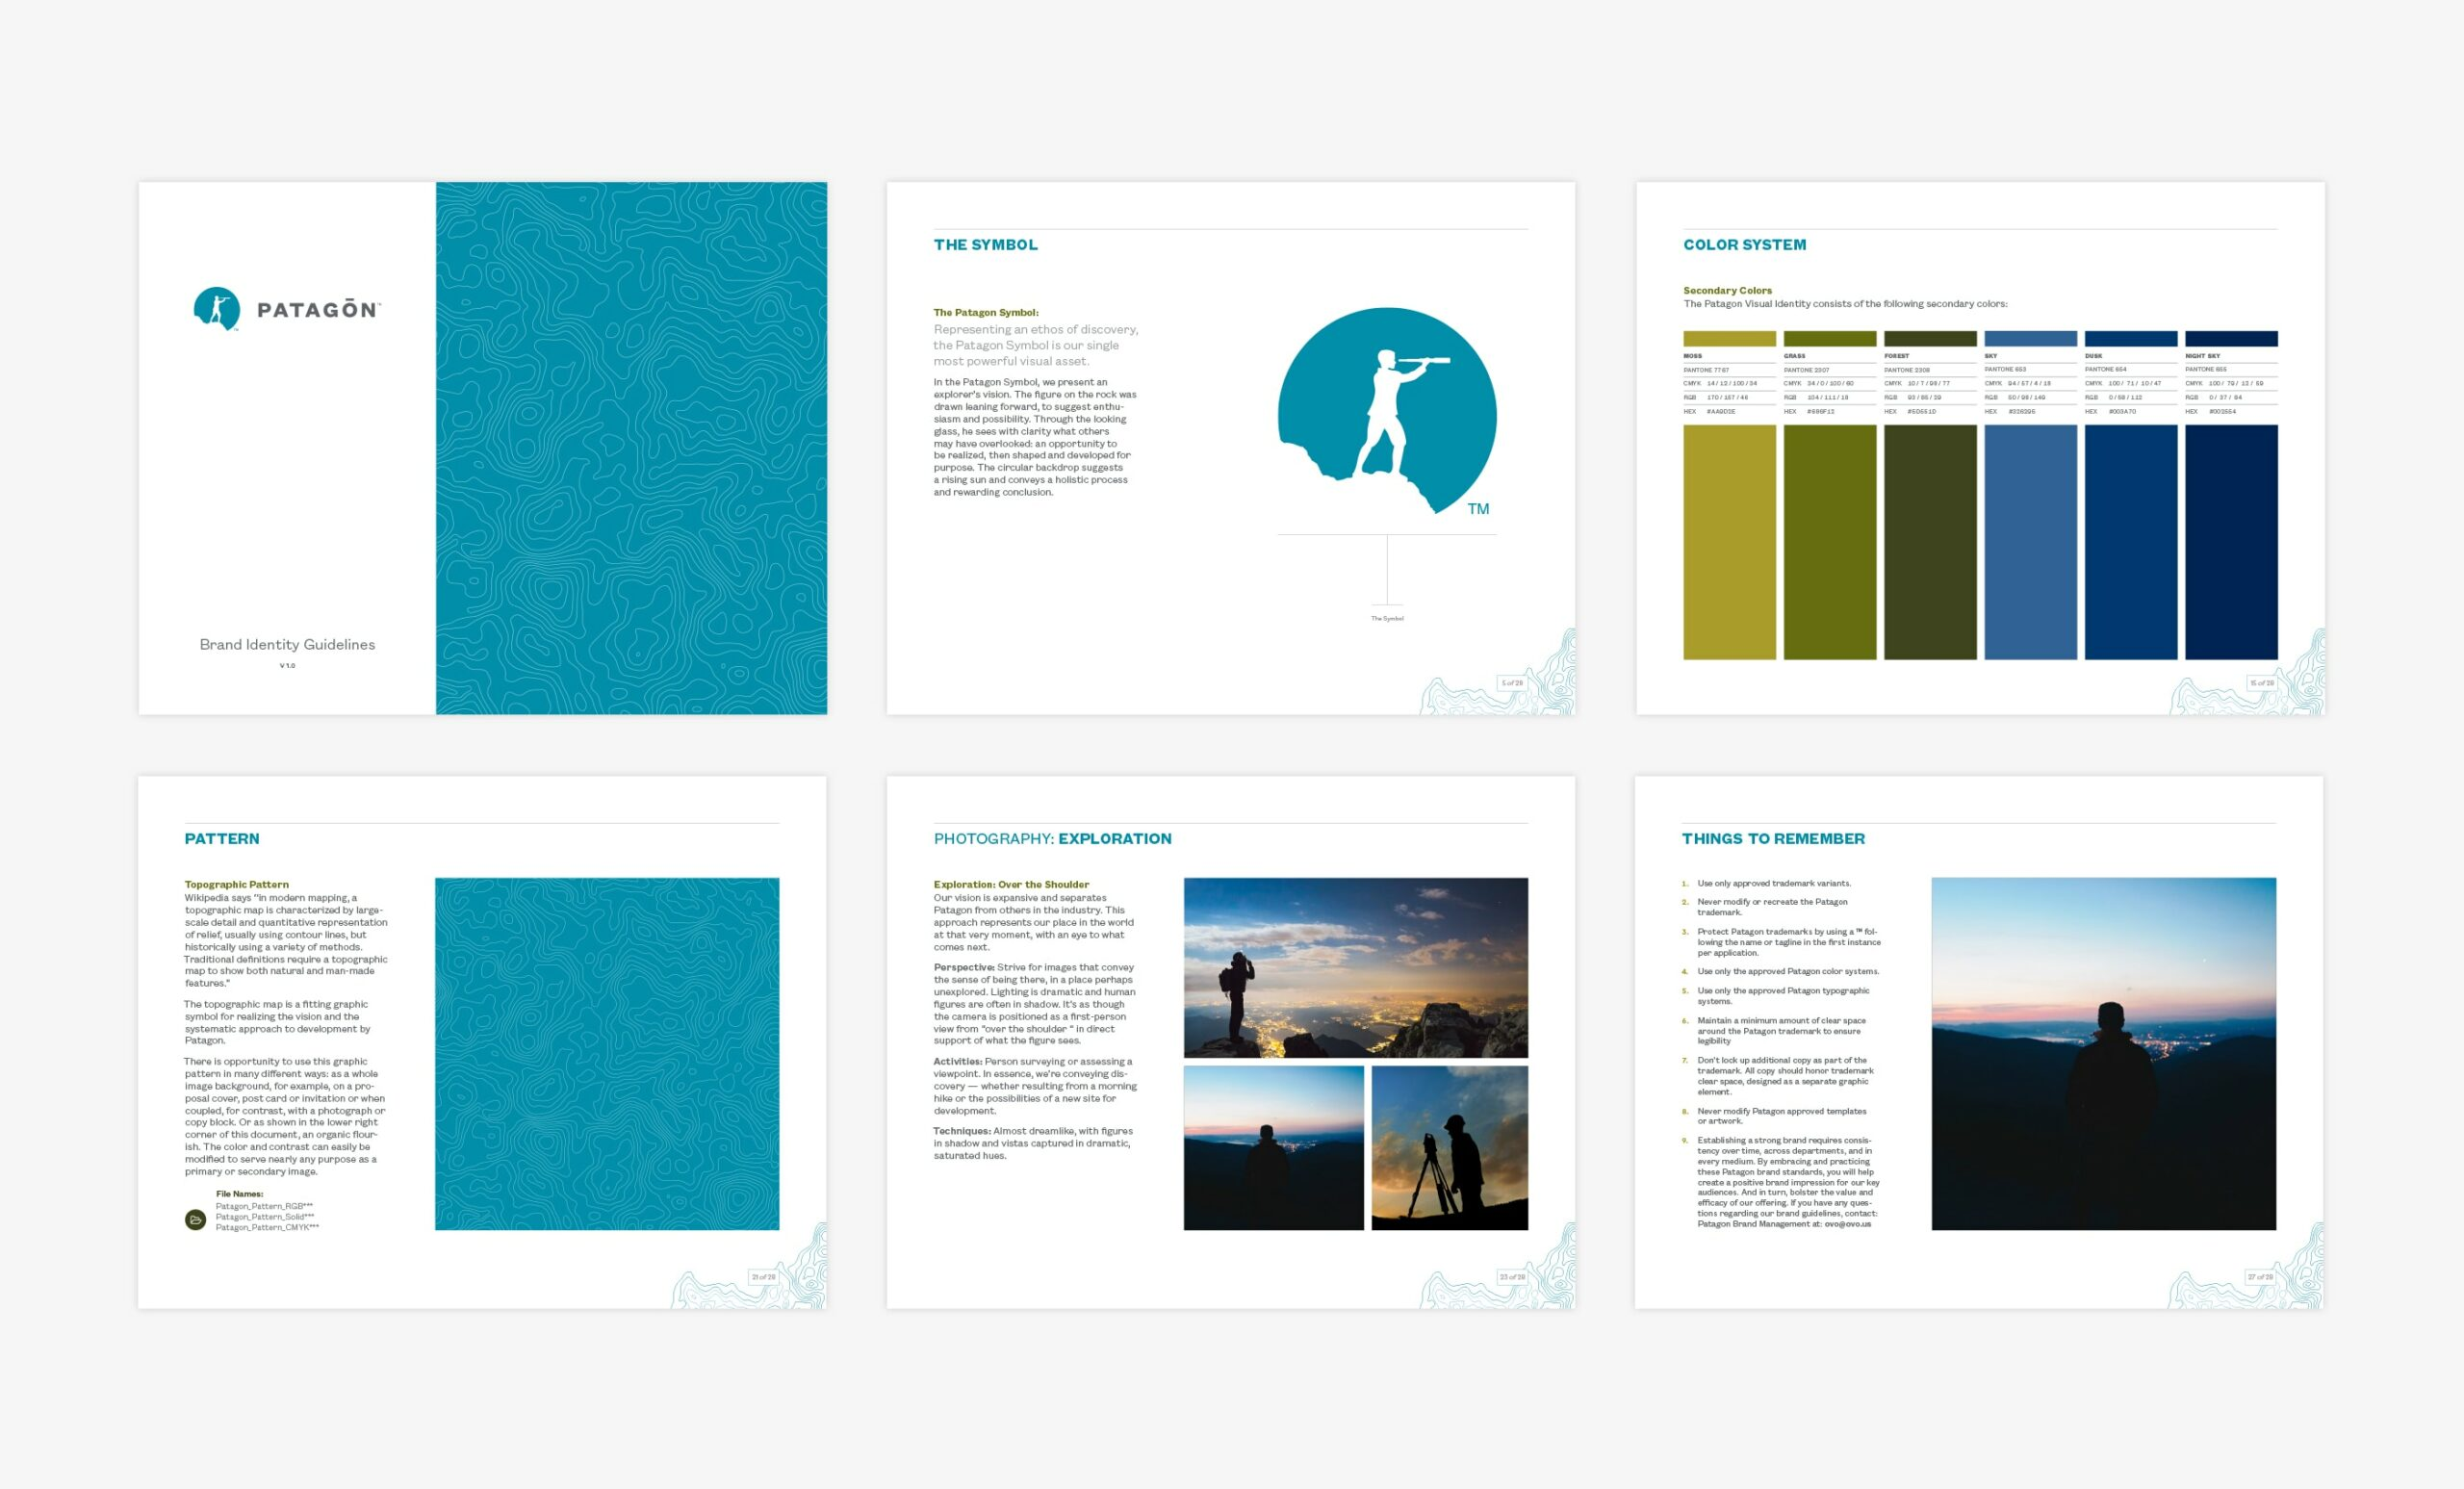 Patagon Brand Guidelines